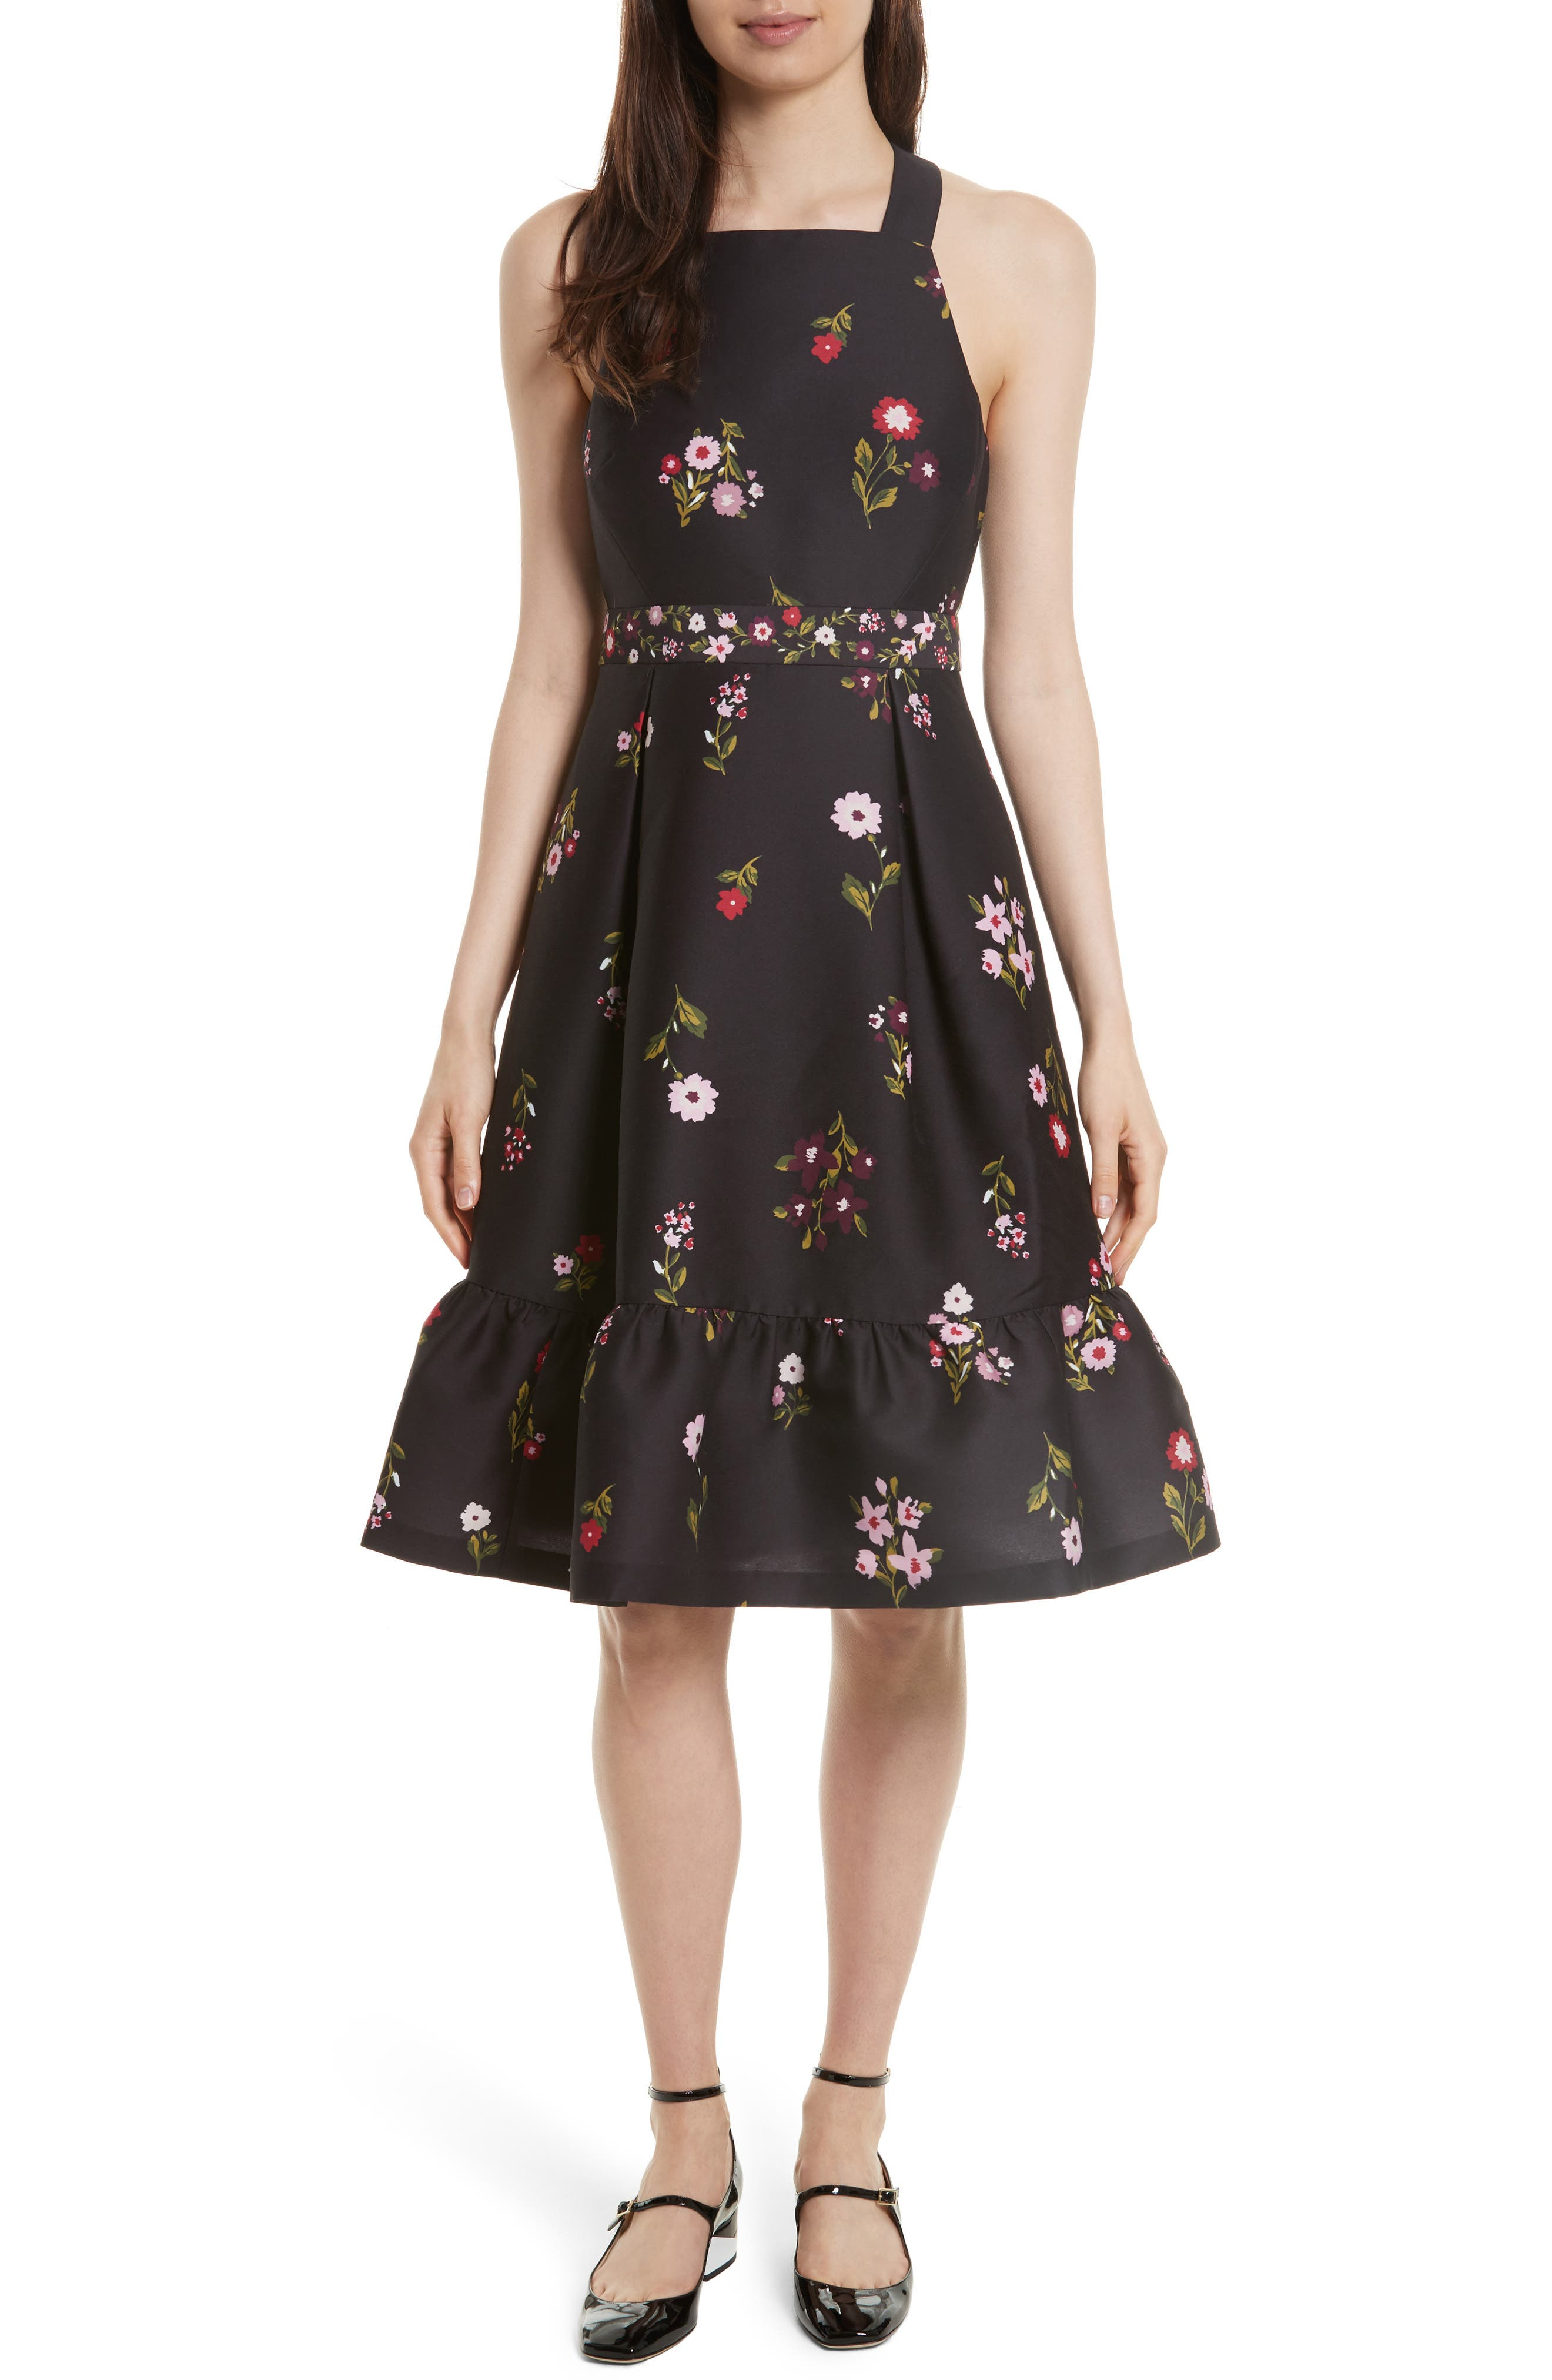 kate spade new york in bloom fit & flare dress